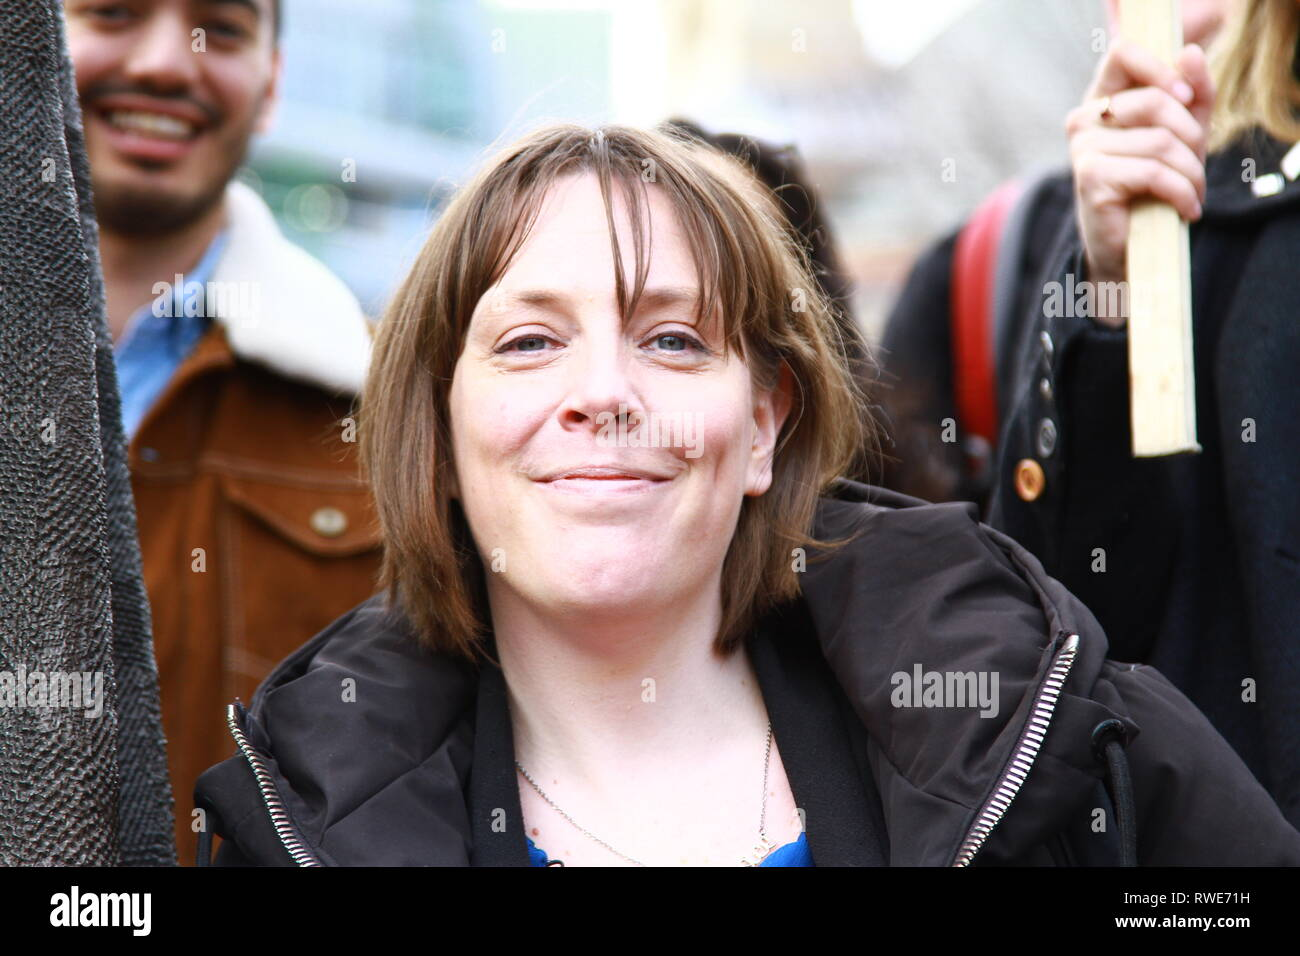 Jess Phillips member of parliament for Birmingham Yardley pictured in Parliament Square, Westminster, London, UK  whilst attending a gathering of various organisations for women's rights on 5th March 2019. Harassment in the work place. Muslim women's network UK. Labour party MPS. British politicians. UK Politics. UK politicians. - Stock Image